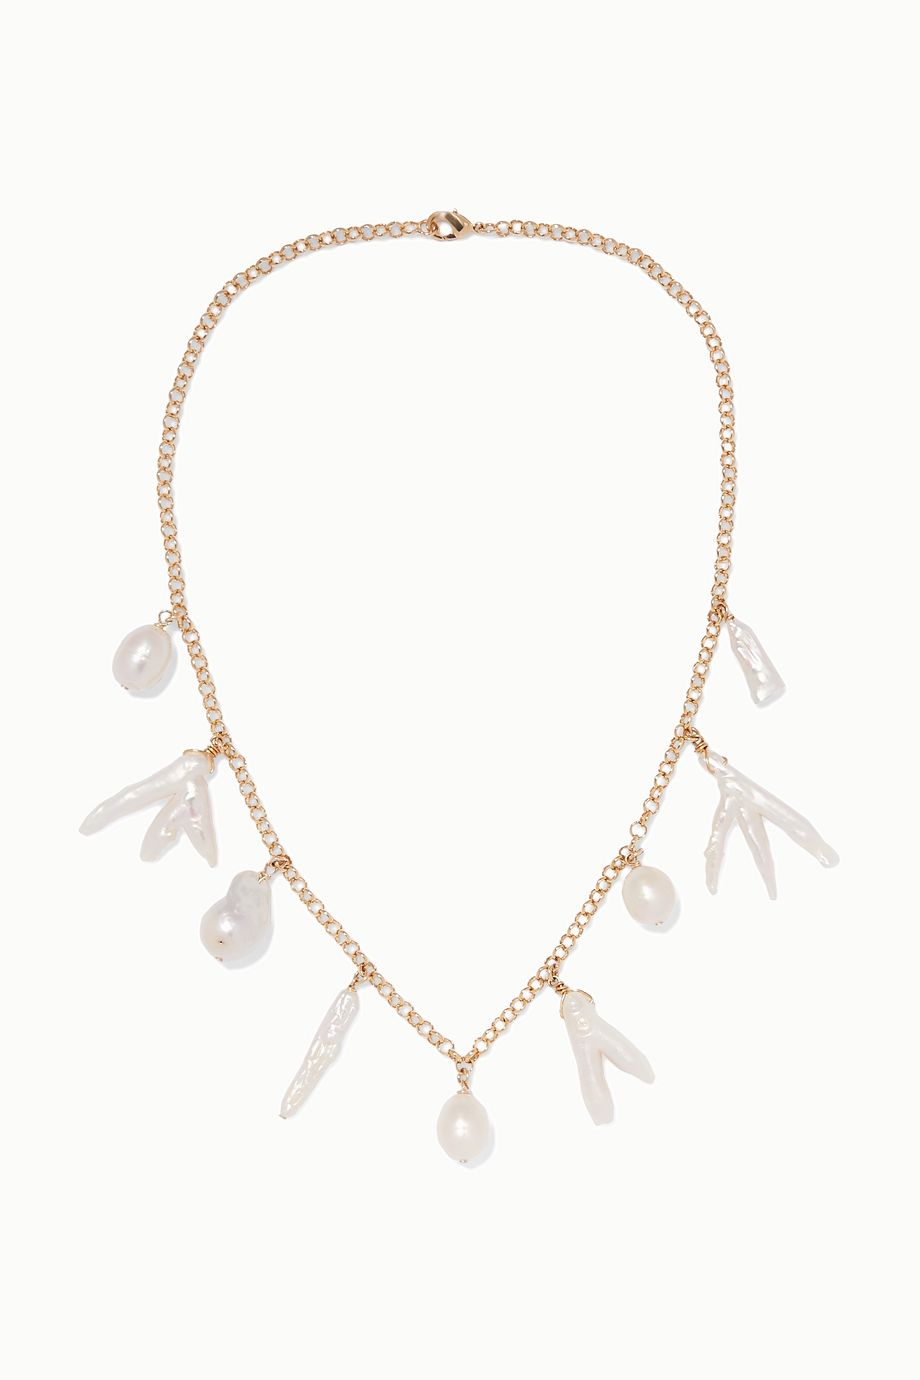 éliou Porto gold-plated pearl necklace